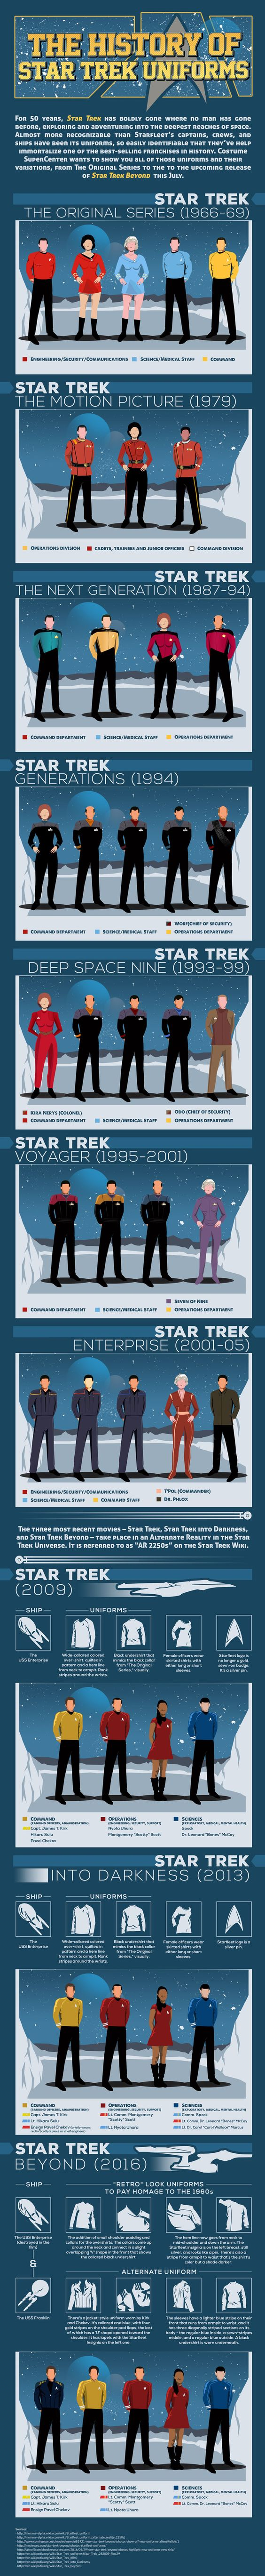 With Star Trek Beyond just over a week away from release and the 50th  anniversary of Trek upon us, 2016 is undoubtedly a huge year for Trek fans  (do you prefer the term Trekkies or Trekkers these days? It's hard to keep  up). Earlier today, I wrote about some cool artwork that celebrates the  franchise, and now the team at Costume SuperCenterhas put together an  infographic that tracks the history of uniforms through most of the  incarnations of Star Trek over the years, from the…